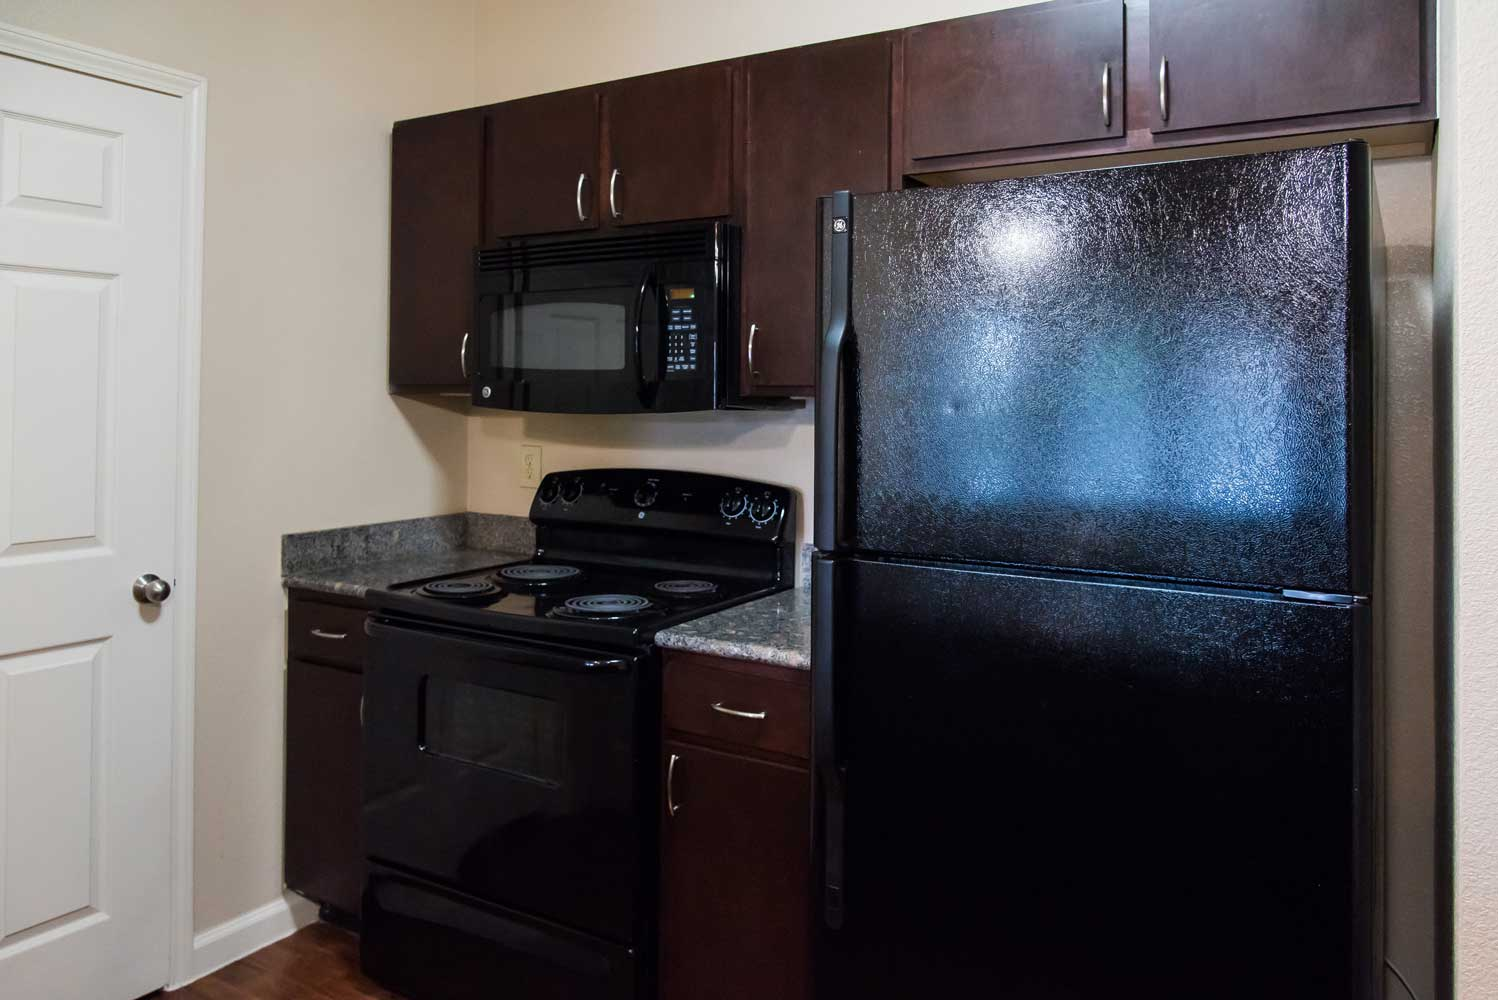 Kitchen with Stainless Steel Appliances at the Oxford at Country Club Apartments in Baytown, TX